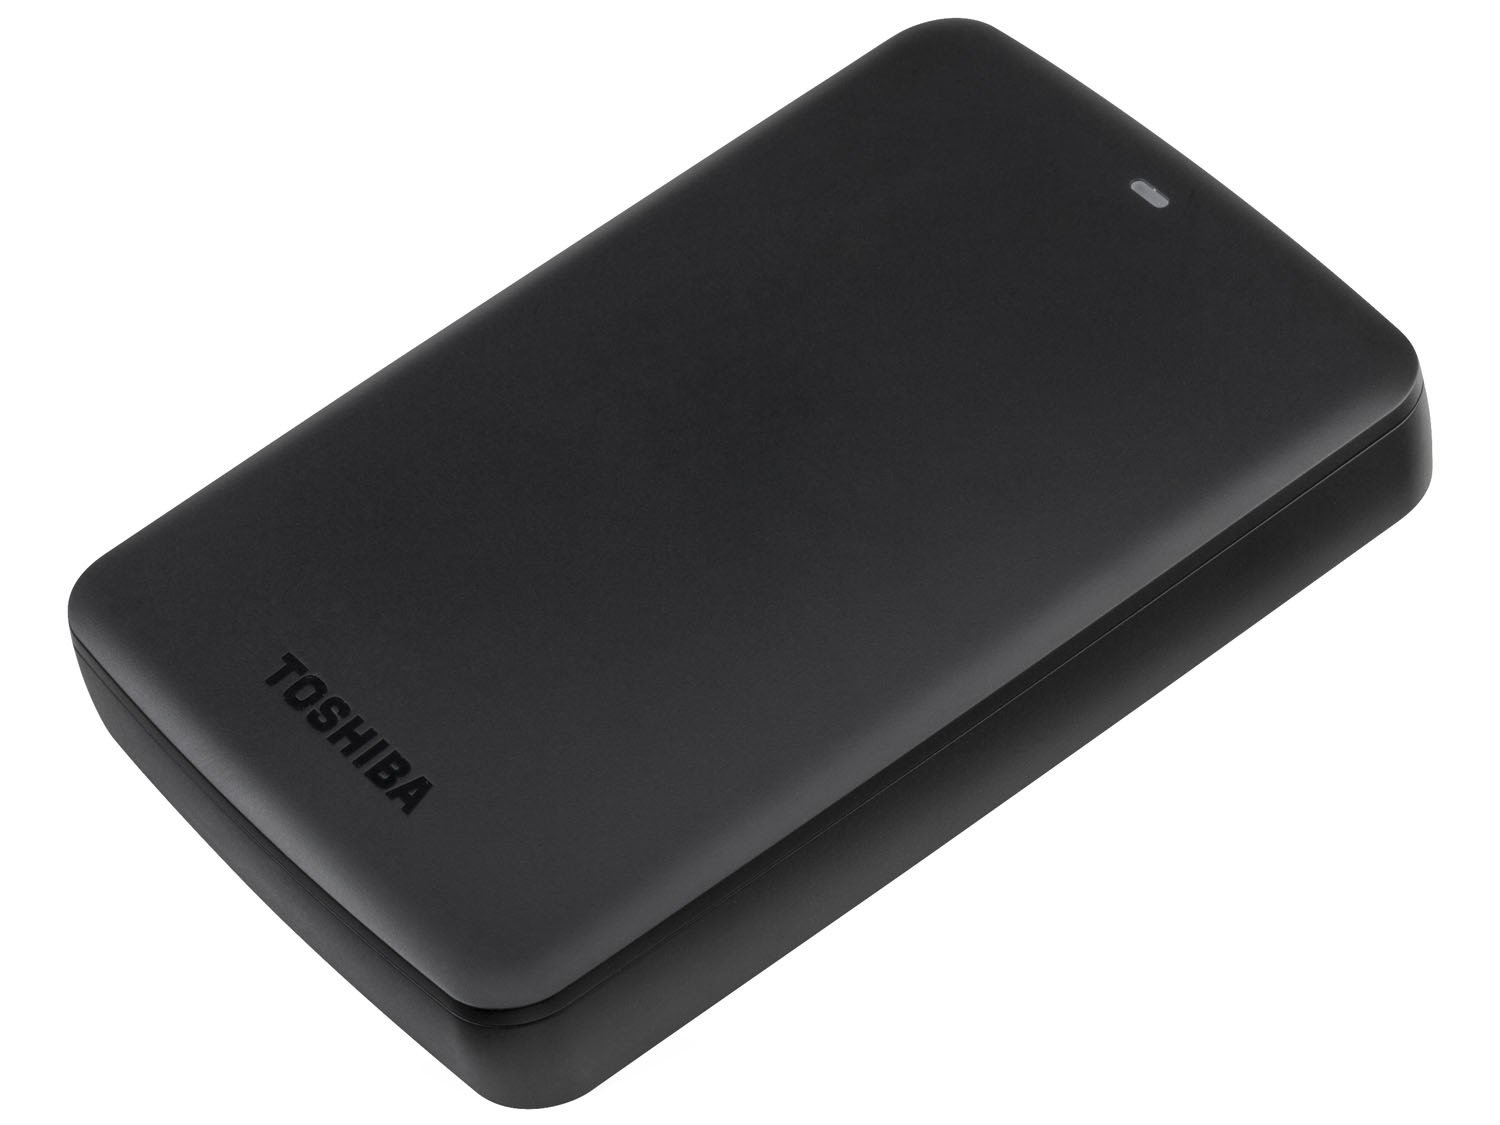 hd externo 2tb toshiba canviobasics 3 0 usb 3 0 hd